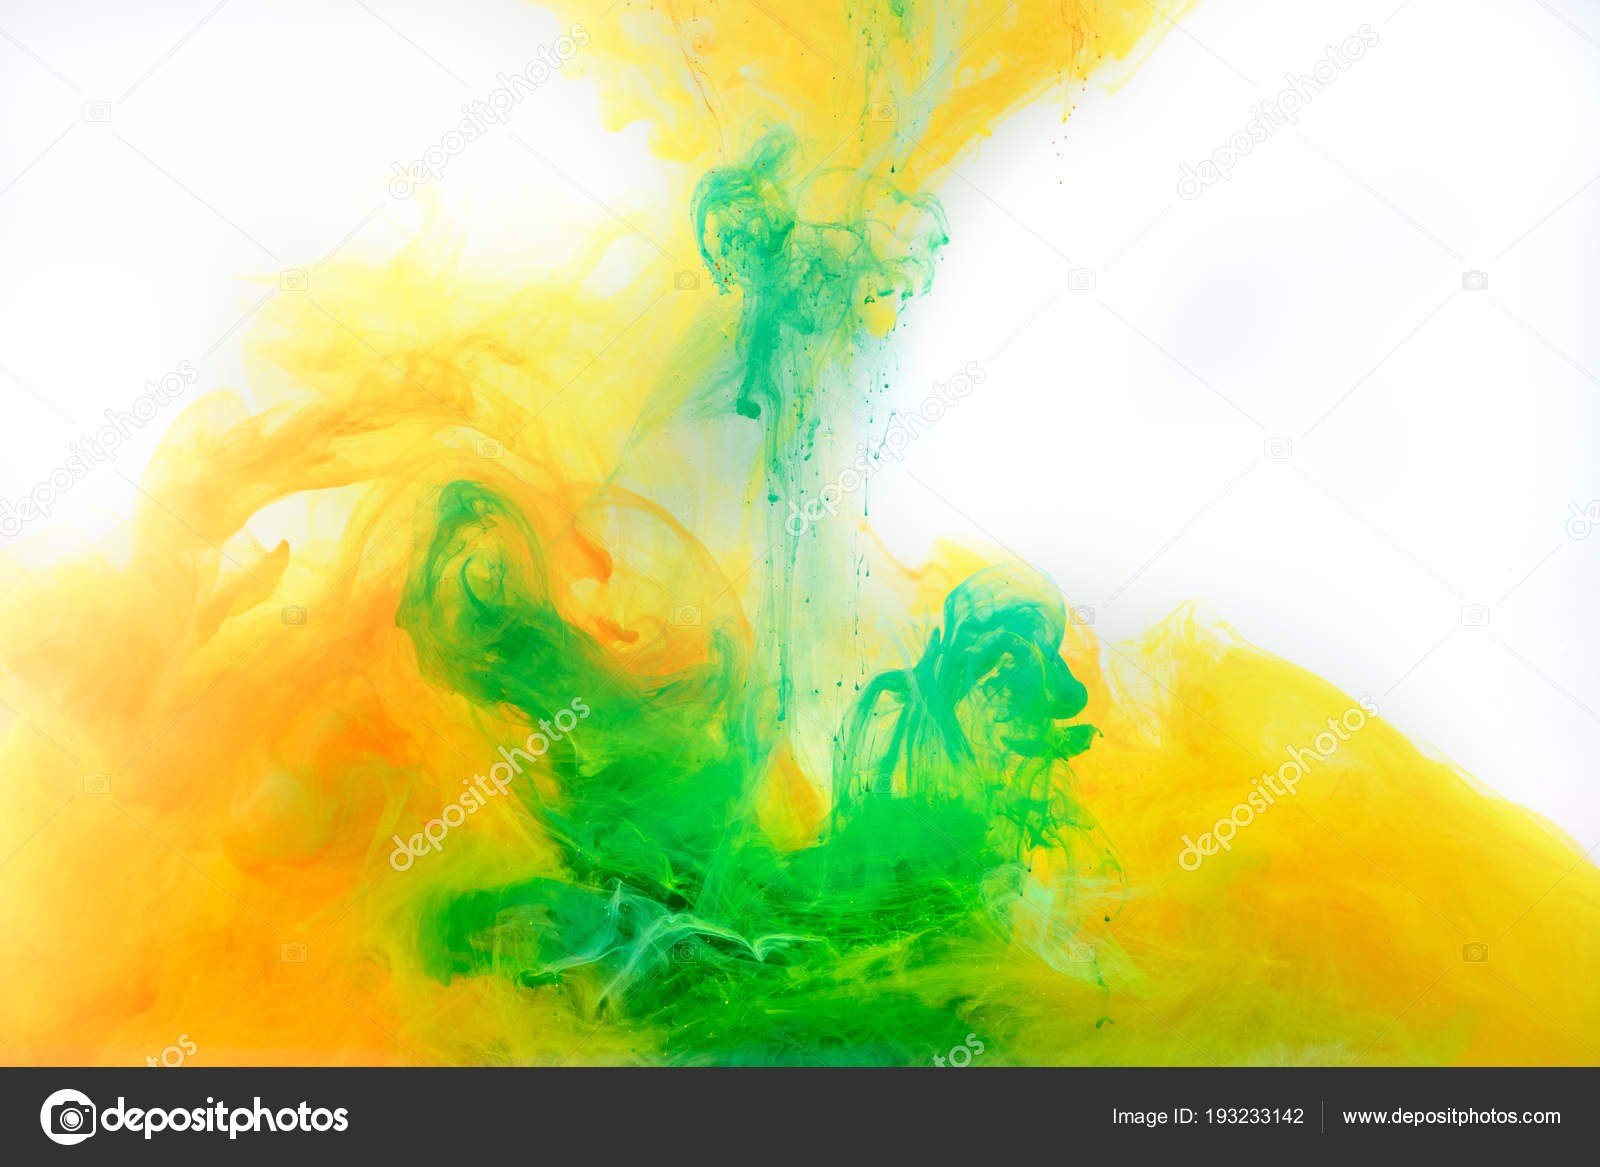 Abstract Background Green Orange Paint Swirling Water